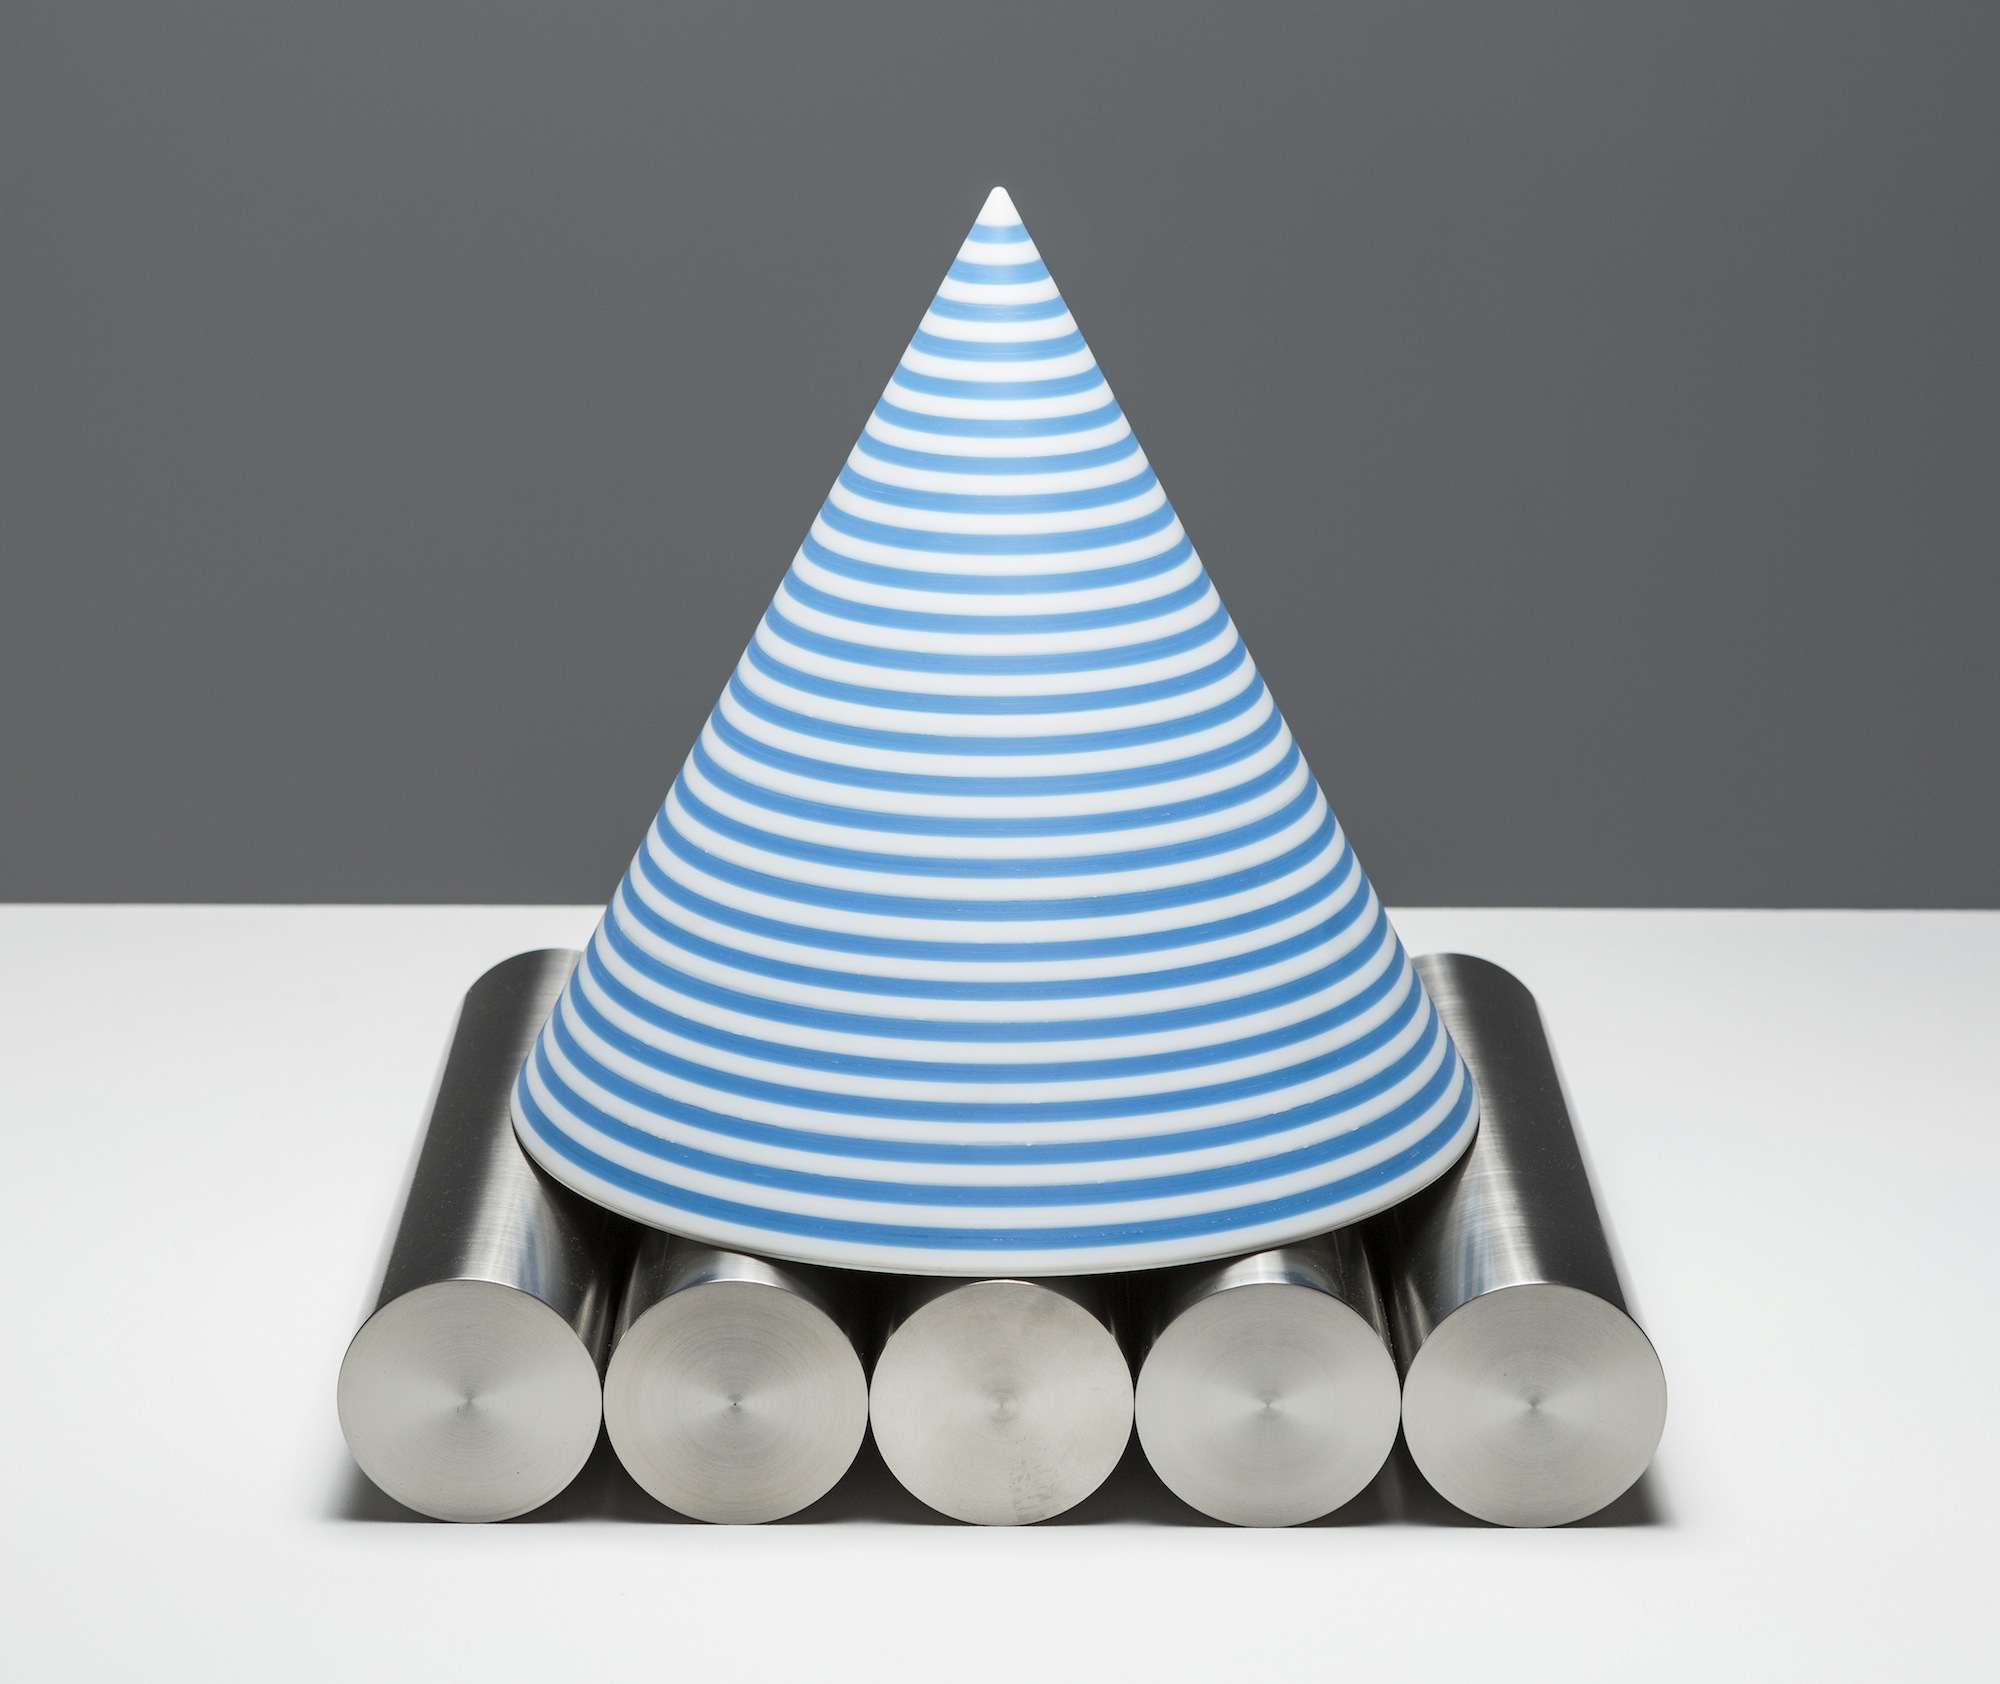 Progress 2014 Perspex and lacquered stainless steel 9 x 40 x 32 cm (assembled sculpture) 32 x 31 cm (cone) and 32 x 8 cm each (5 cylinders)